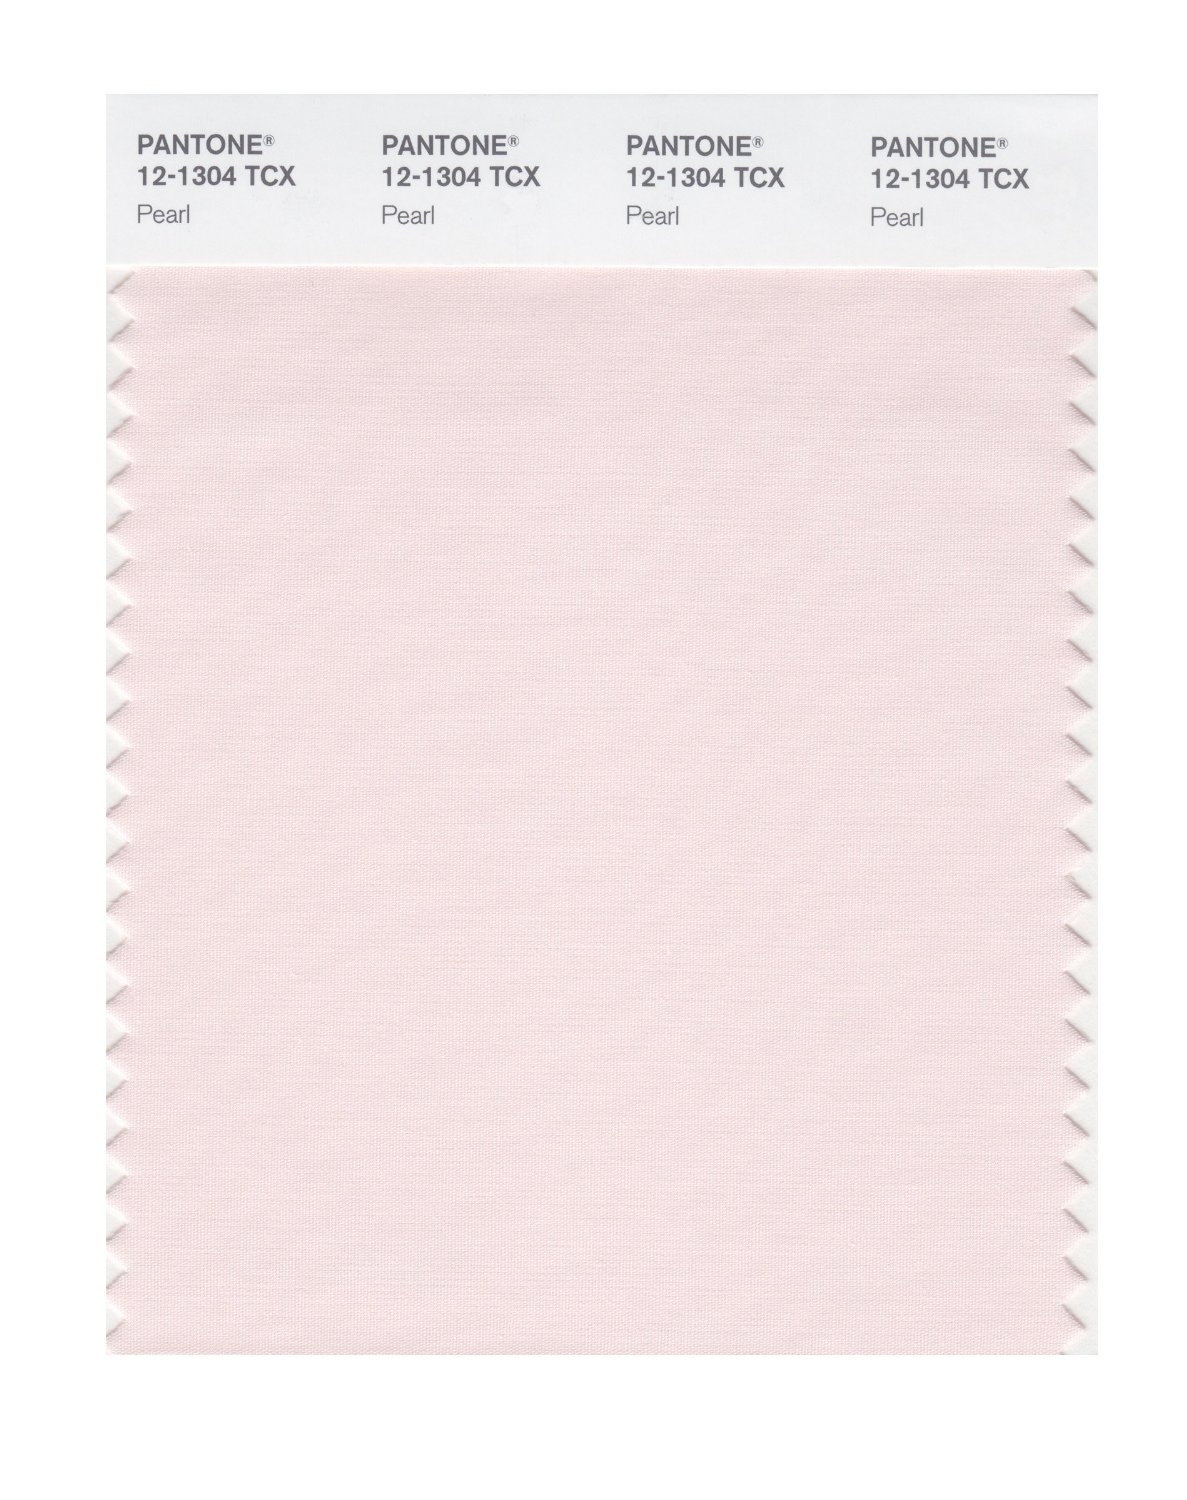 Pantone Smart Swatch 12-1304 Pearl